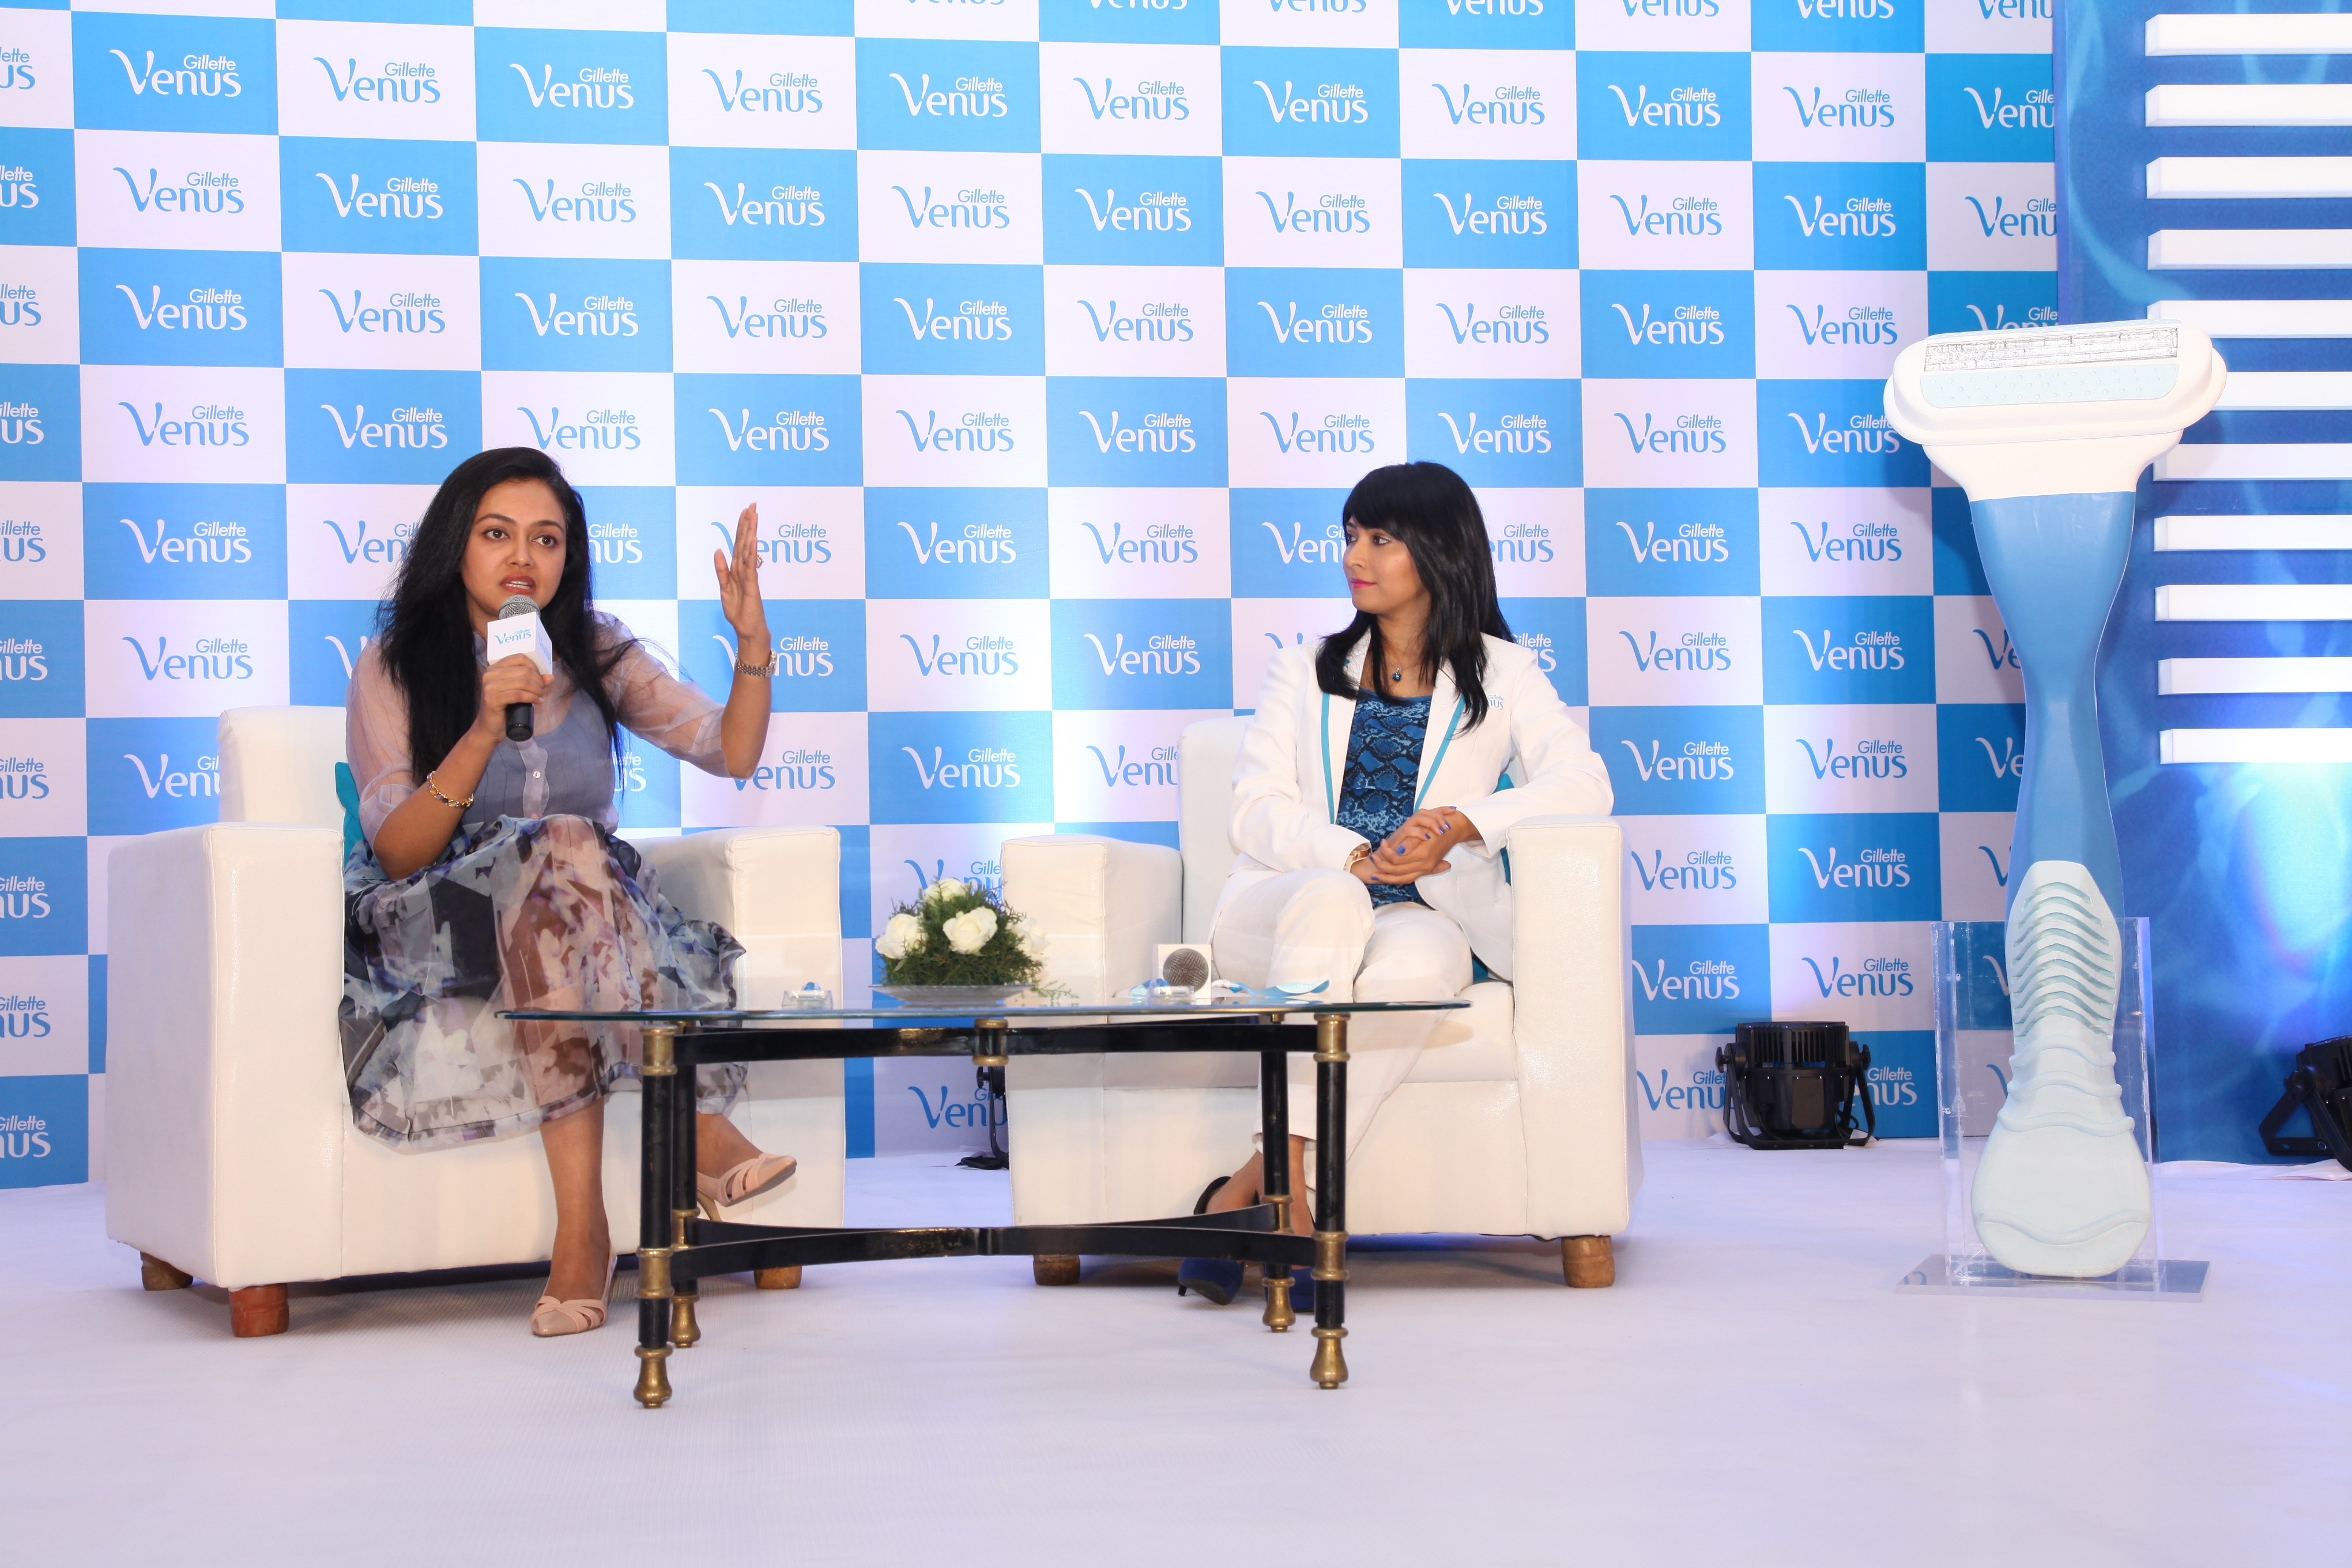 radhika pandit and doctor rashmi shetty busting shaving myths at gillette venus subscribe to smooth event bangalore